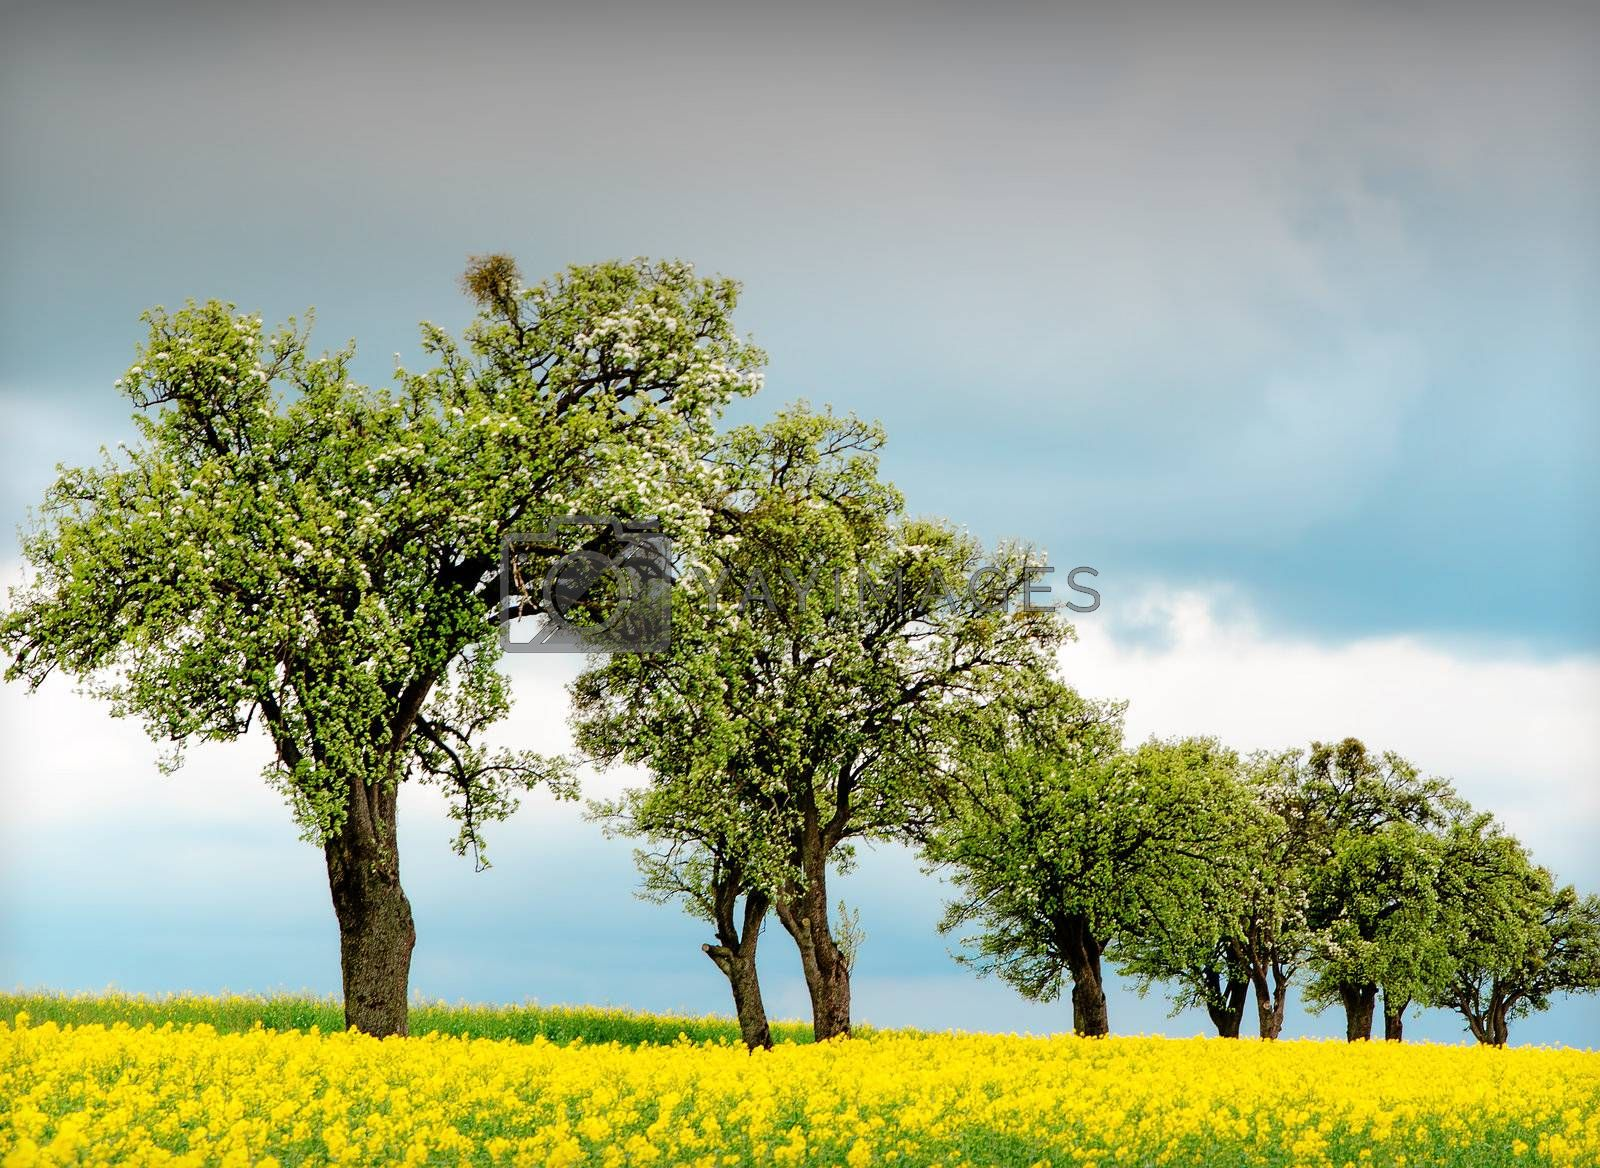 trees surrounded by rapeseed